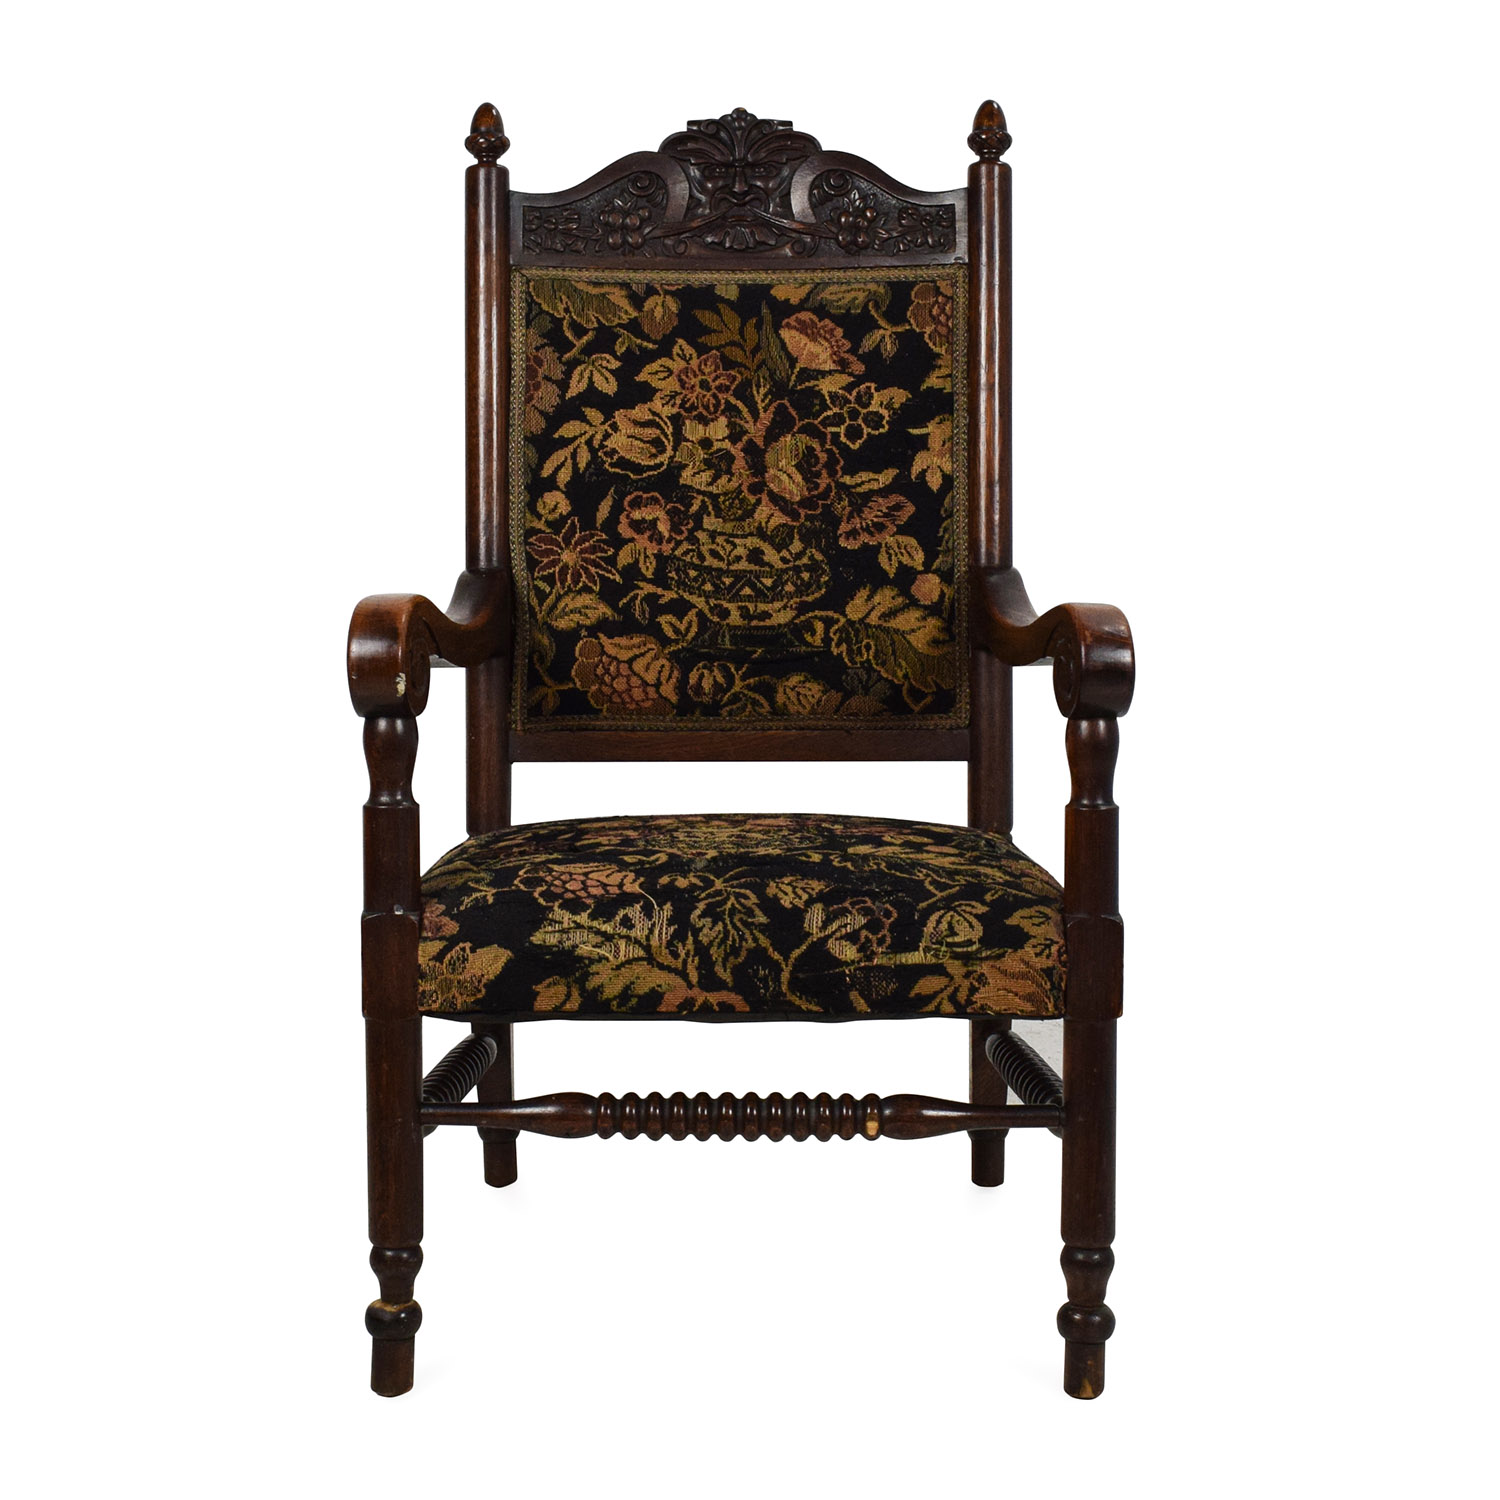 Antique Tudor Upholstered Chair / Accent Chairs